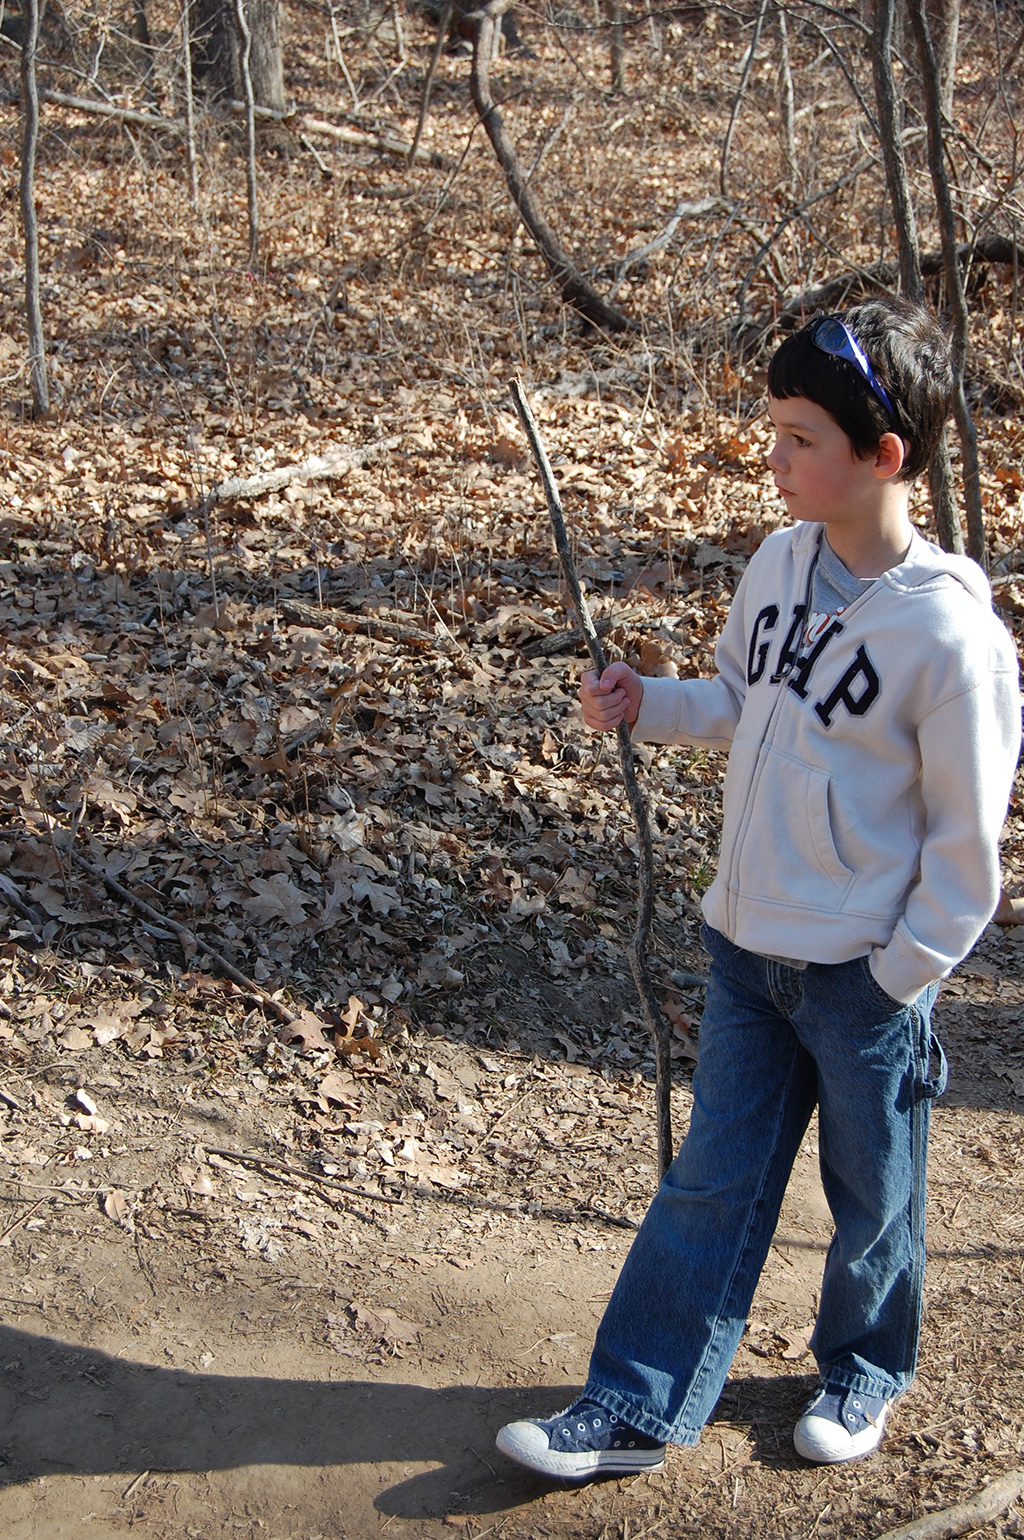 The author's son, Jackson, on a hike in the Oklahoma Cross Timbers.